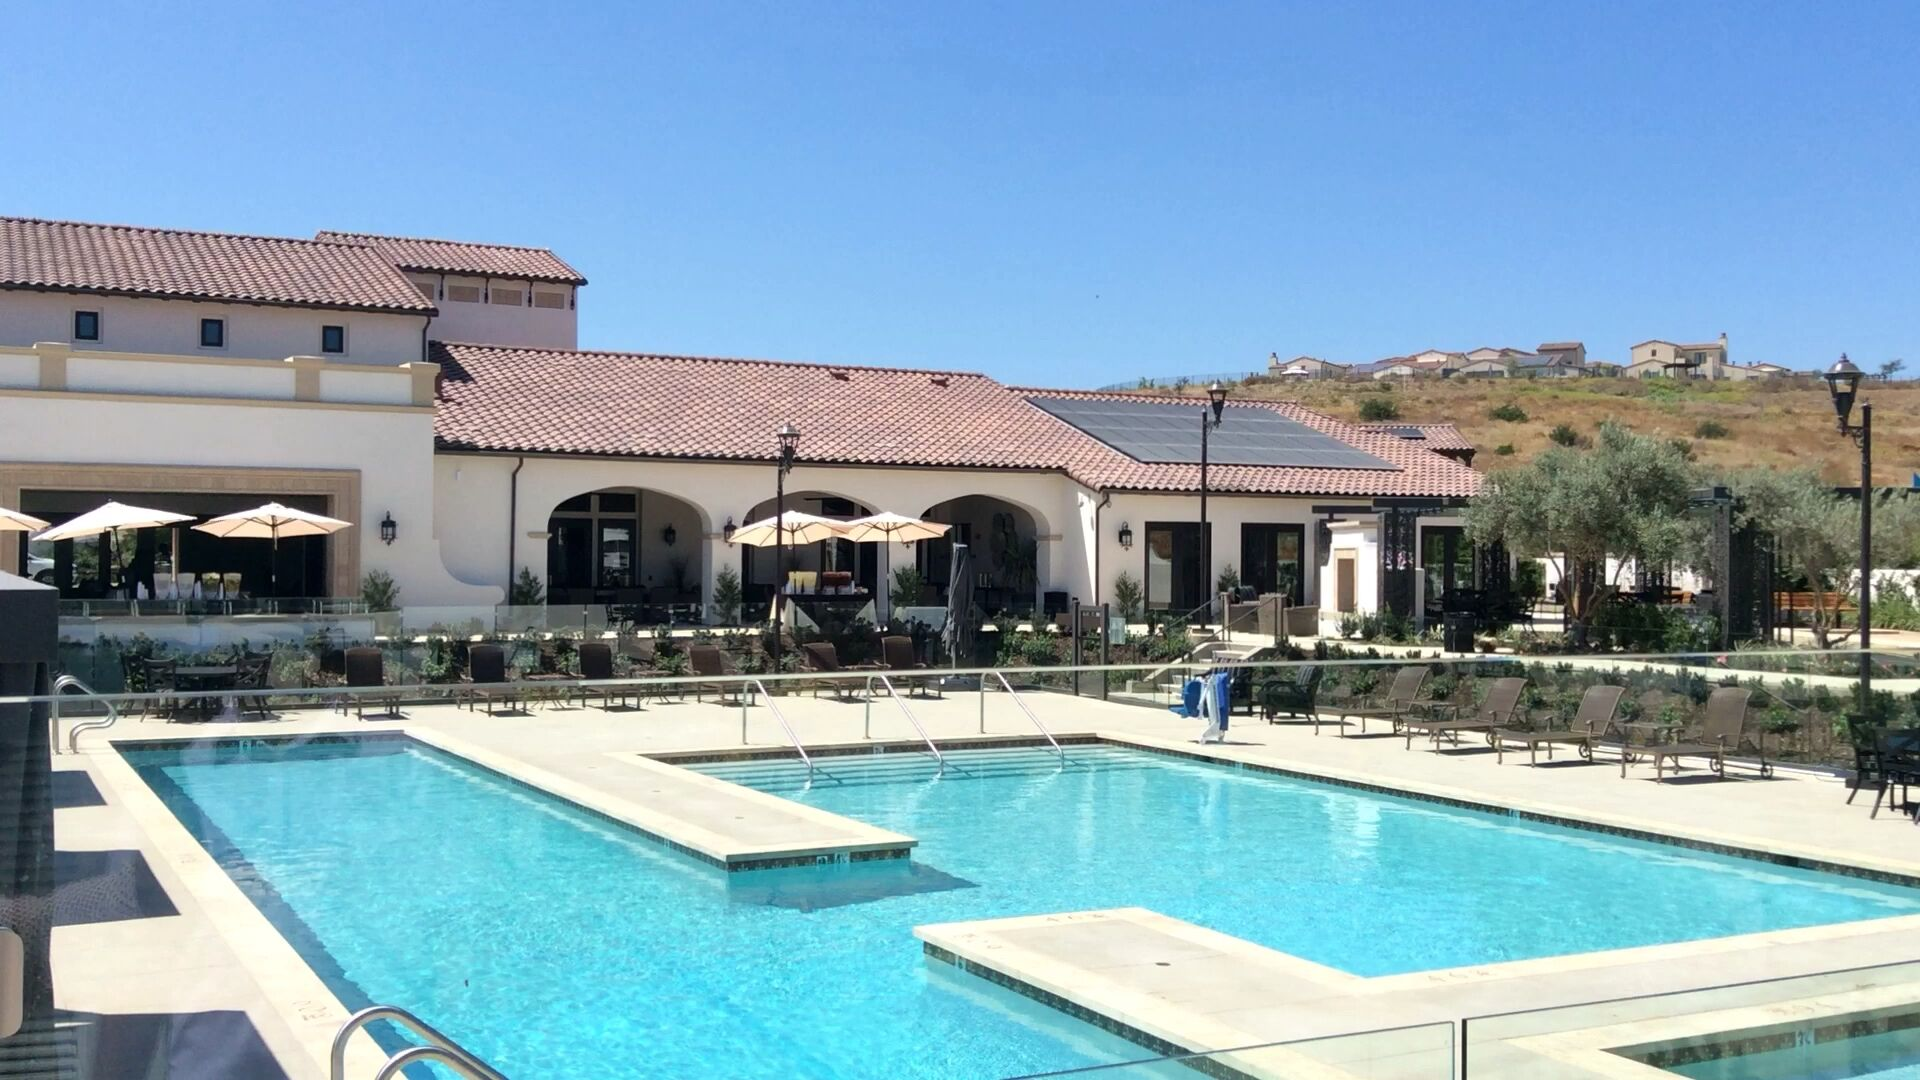 Search Auberge Del Sur 55 Community San Diego Homes For Sale Dreamwellhomes